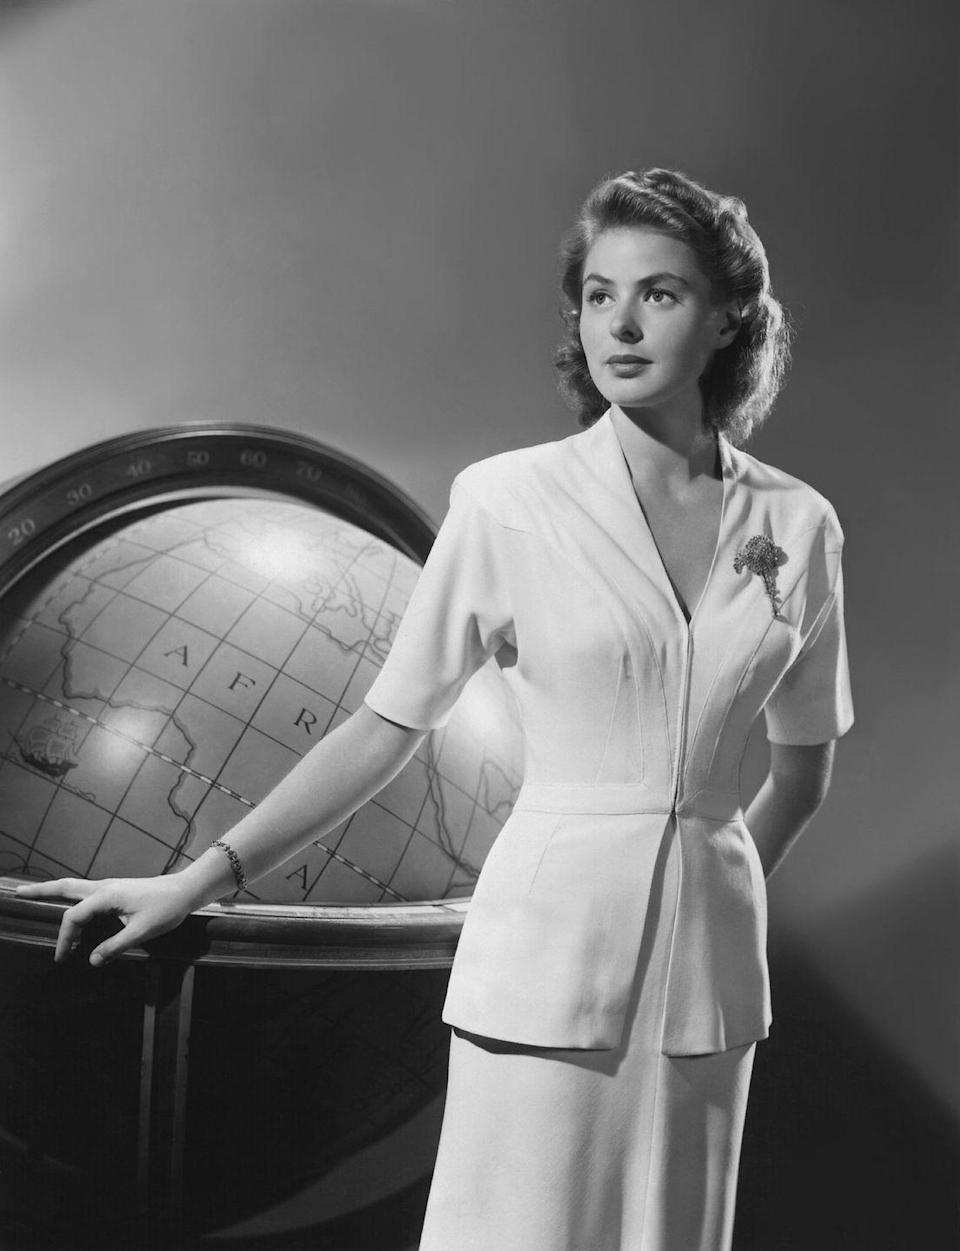 """<p>Ingrid Bergman was the epitome of '40s chic in <em>Casablanca</em><em>,</em> but her casual white two-piece suit and diamond brooch is what stands out as most memorable. Oh, and the line, """"Here's looking at you, kid."""" That too.</p>"""